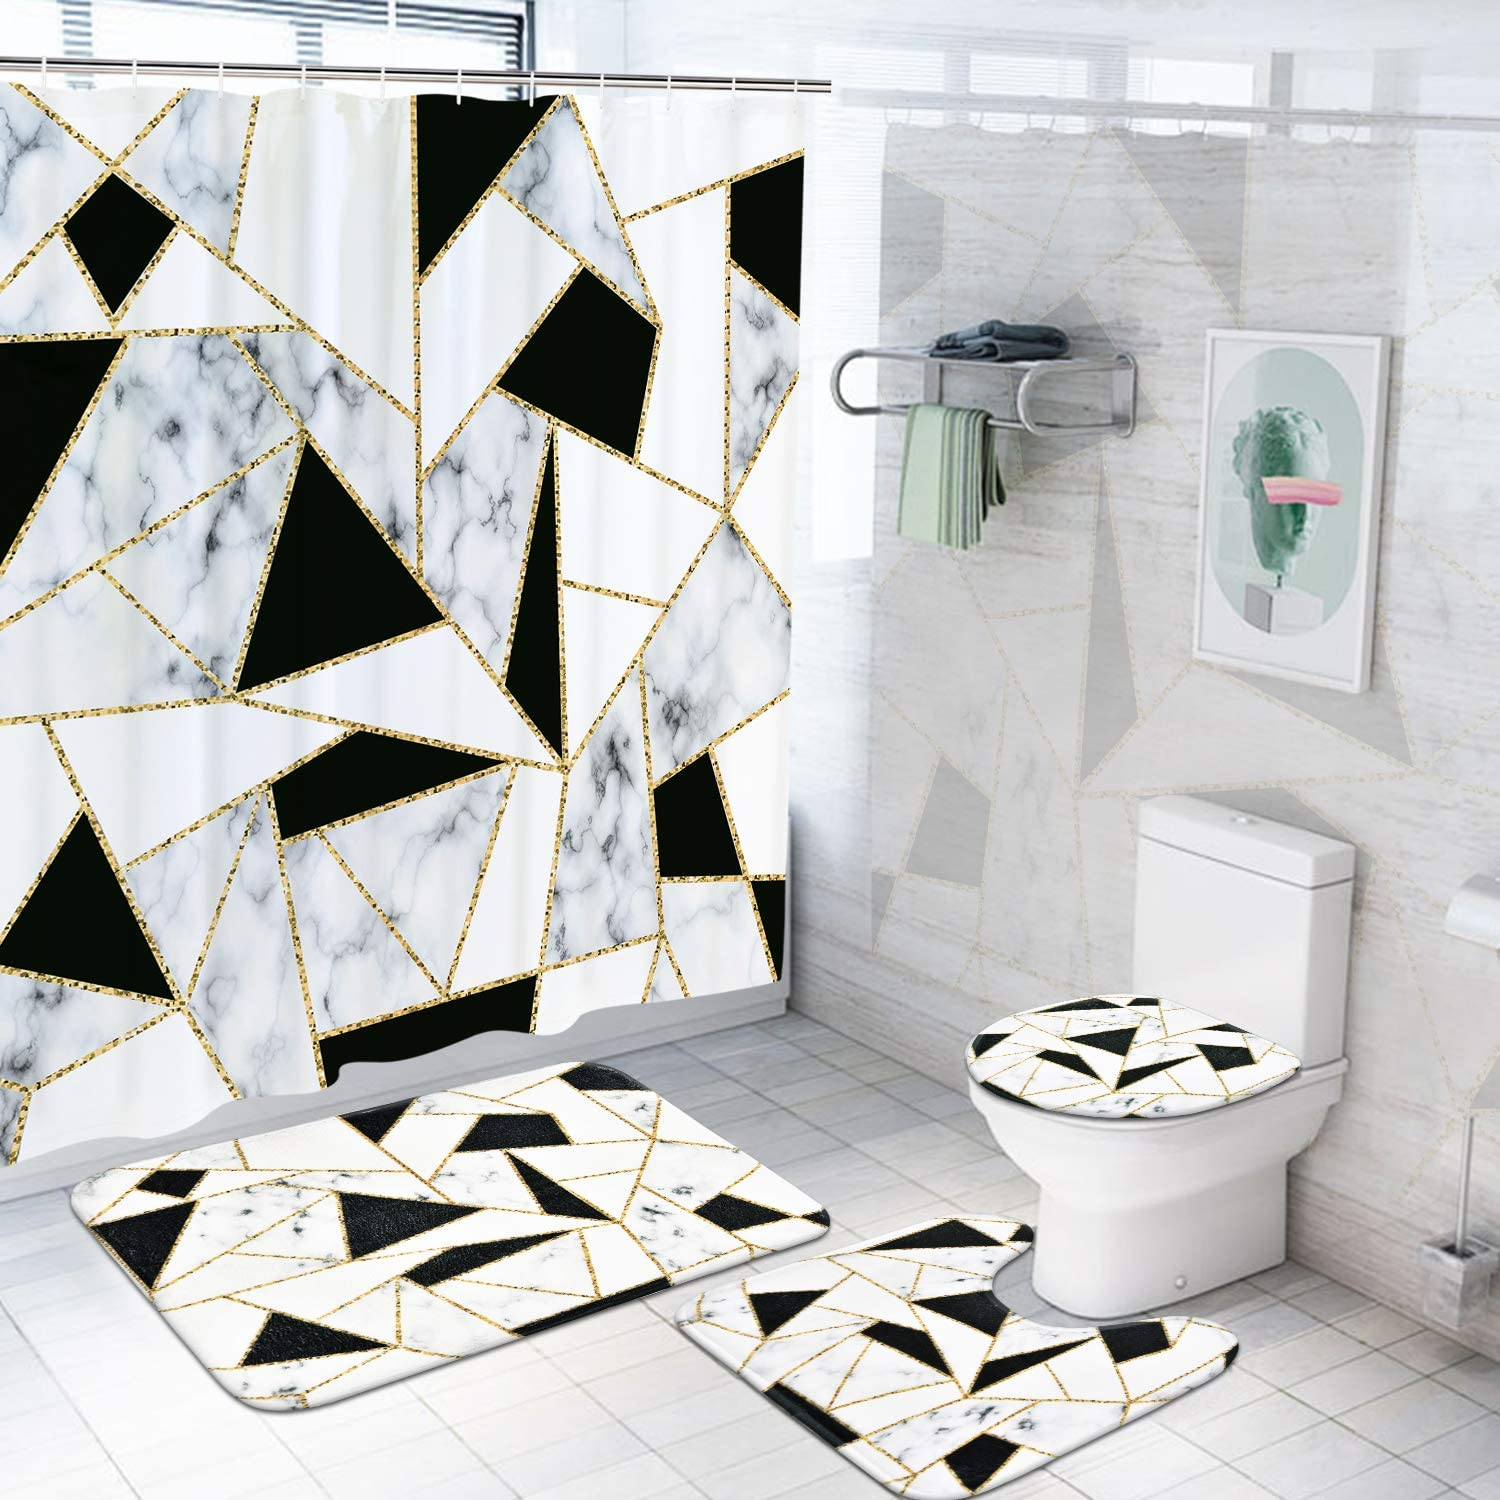 decorx 4 pcs marble shower curtain set with rugs toilet lid cover bath mat black white geometric splice shower curtain with 12 hooks durable